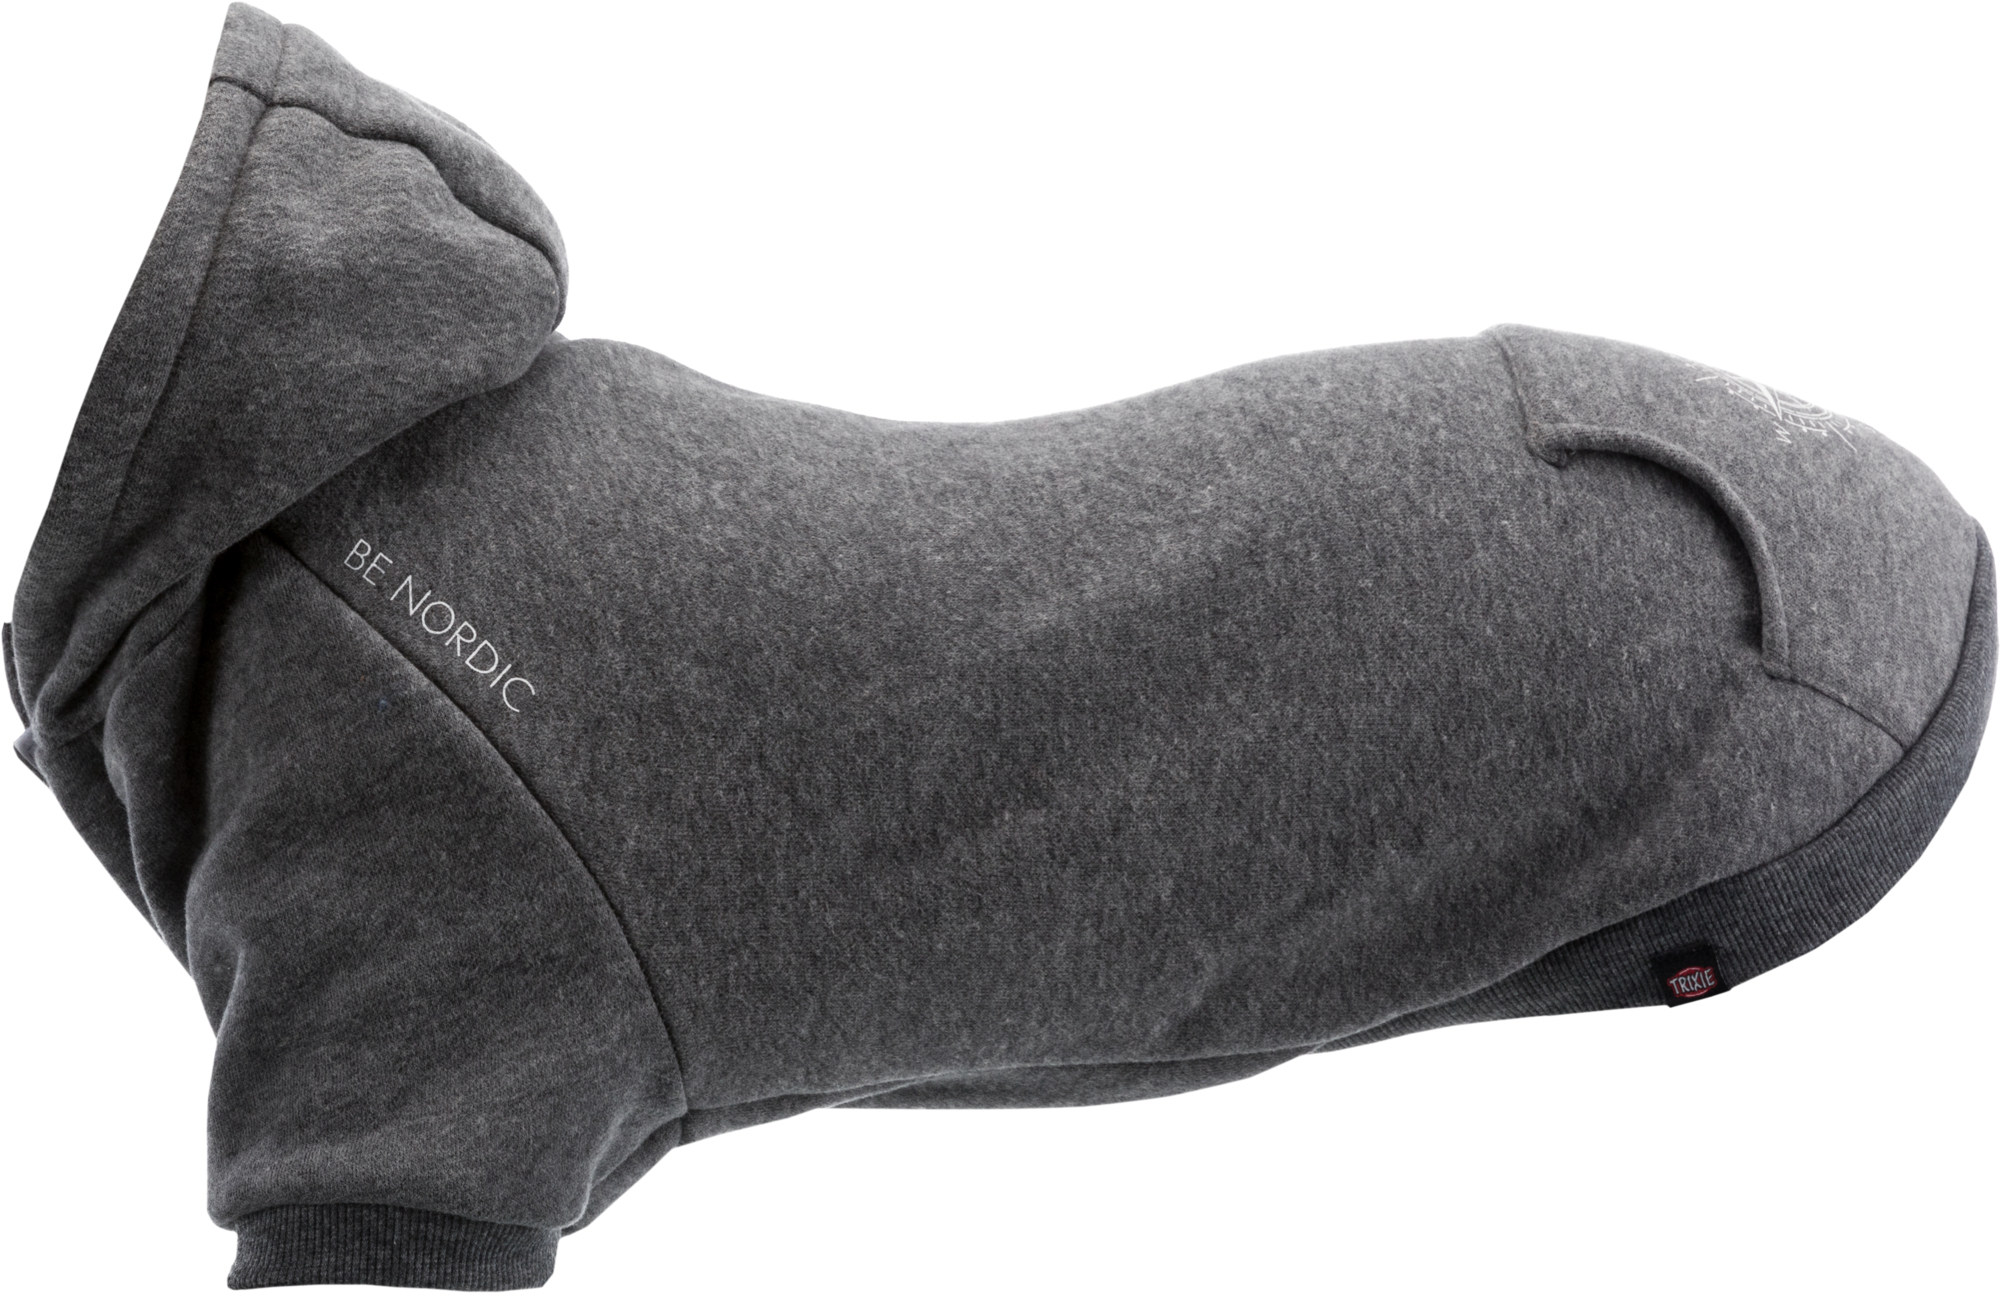 TRIXIE BE NORDIC Hoodie Flensburg TRIXIE BE NORDIC Hoodie Flensburg, XS: 30 cm, grau